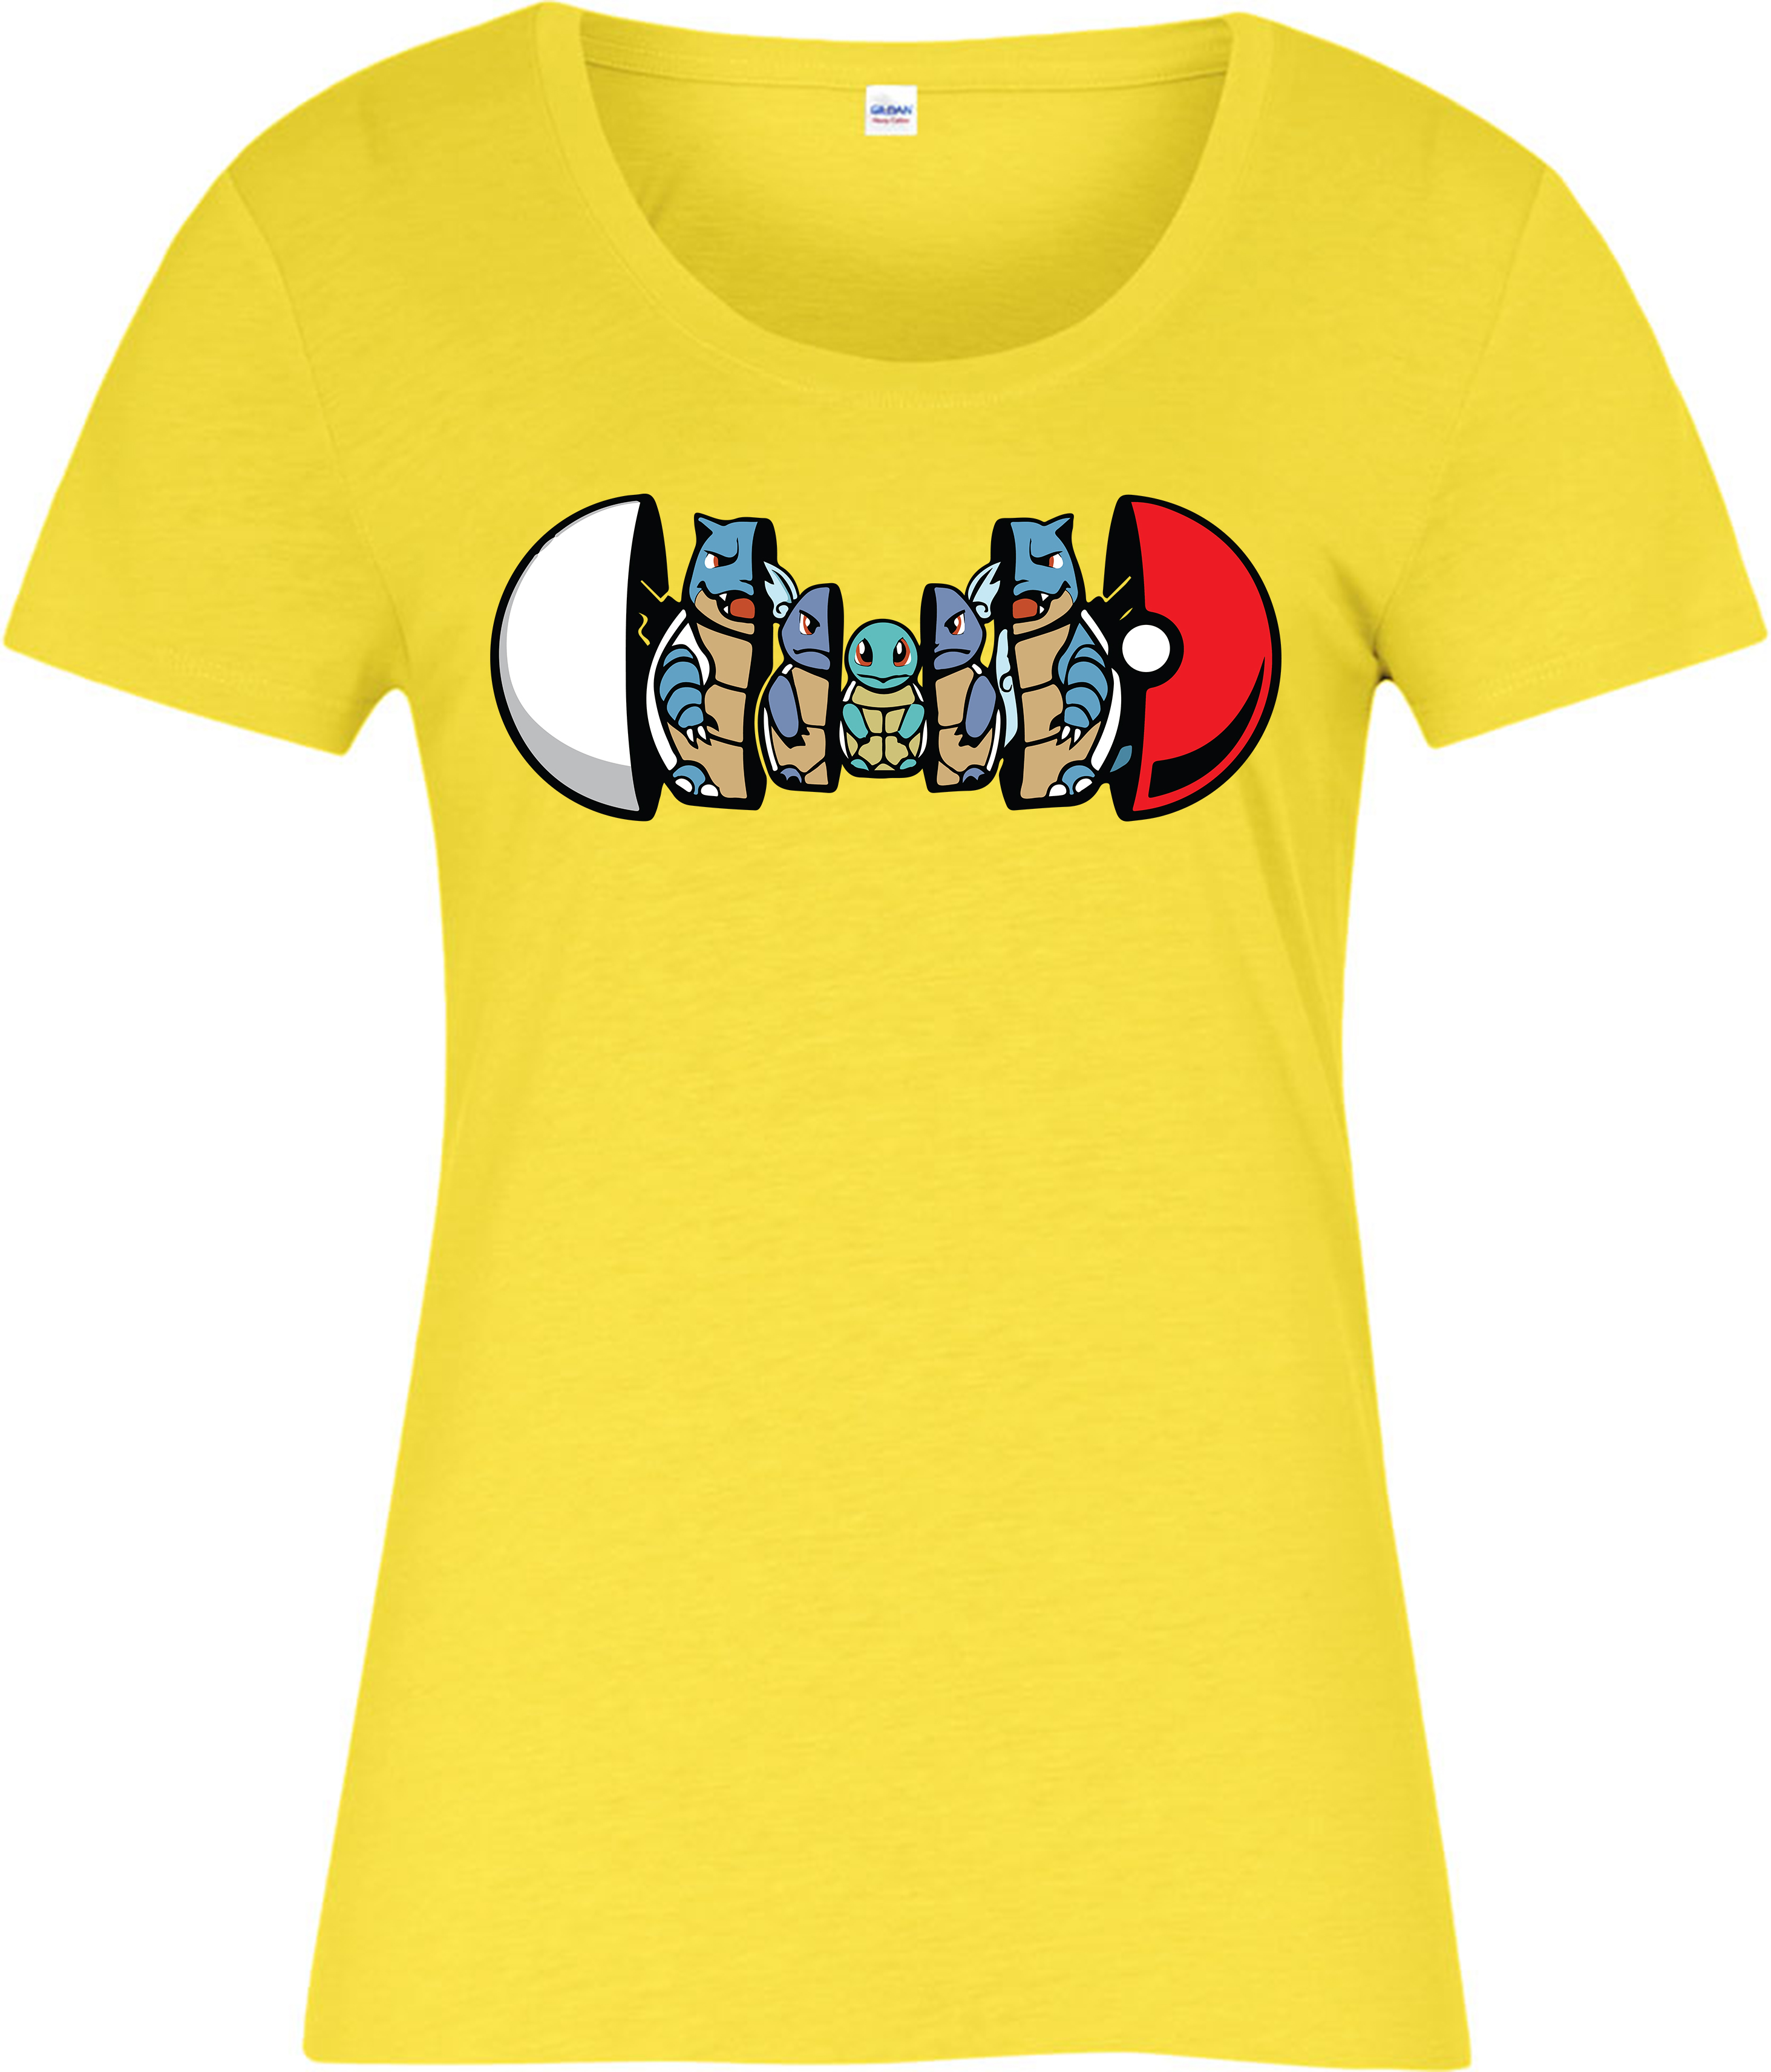 Pokemon La s T shirt Squirtle Forms Pokeball Spoof Yellow 2xl